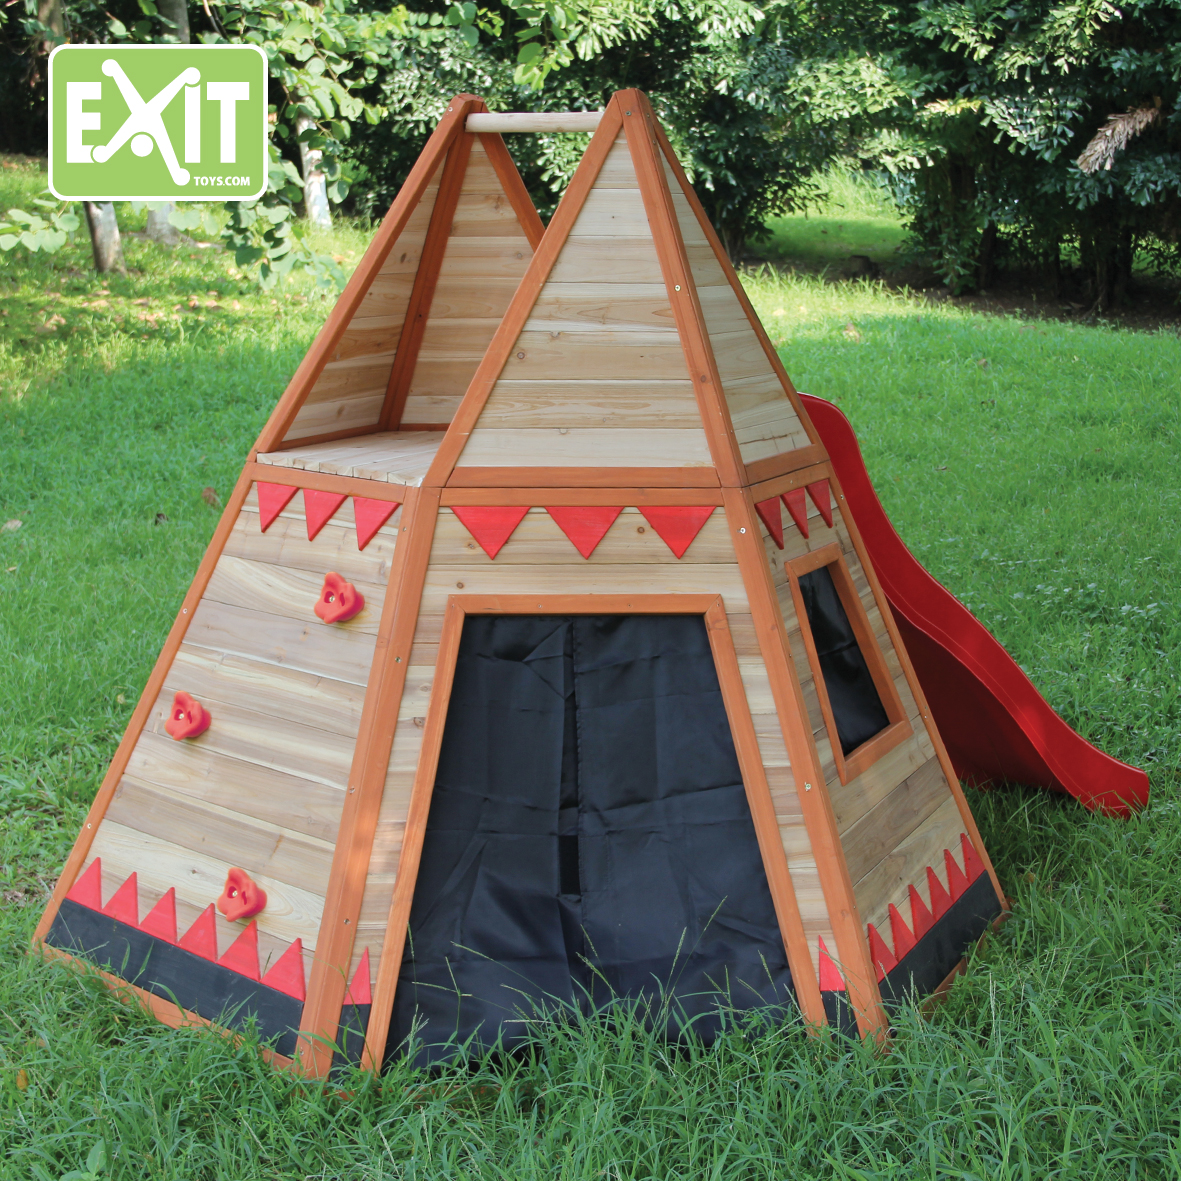 exit tipi zelt spielhaus aus holz gartenhaus f r kinder ebay. Black Bedroom Furniture Sets. Home Design Ideas